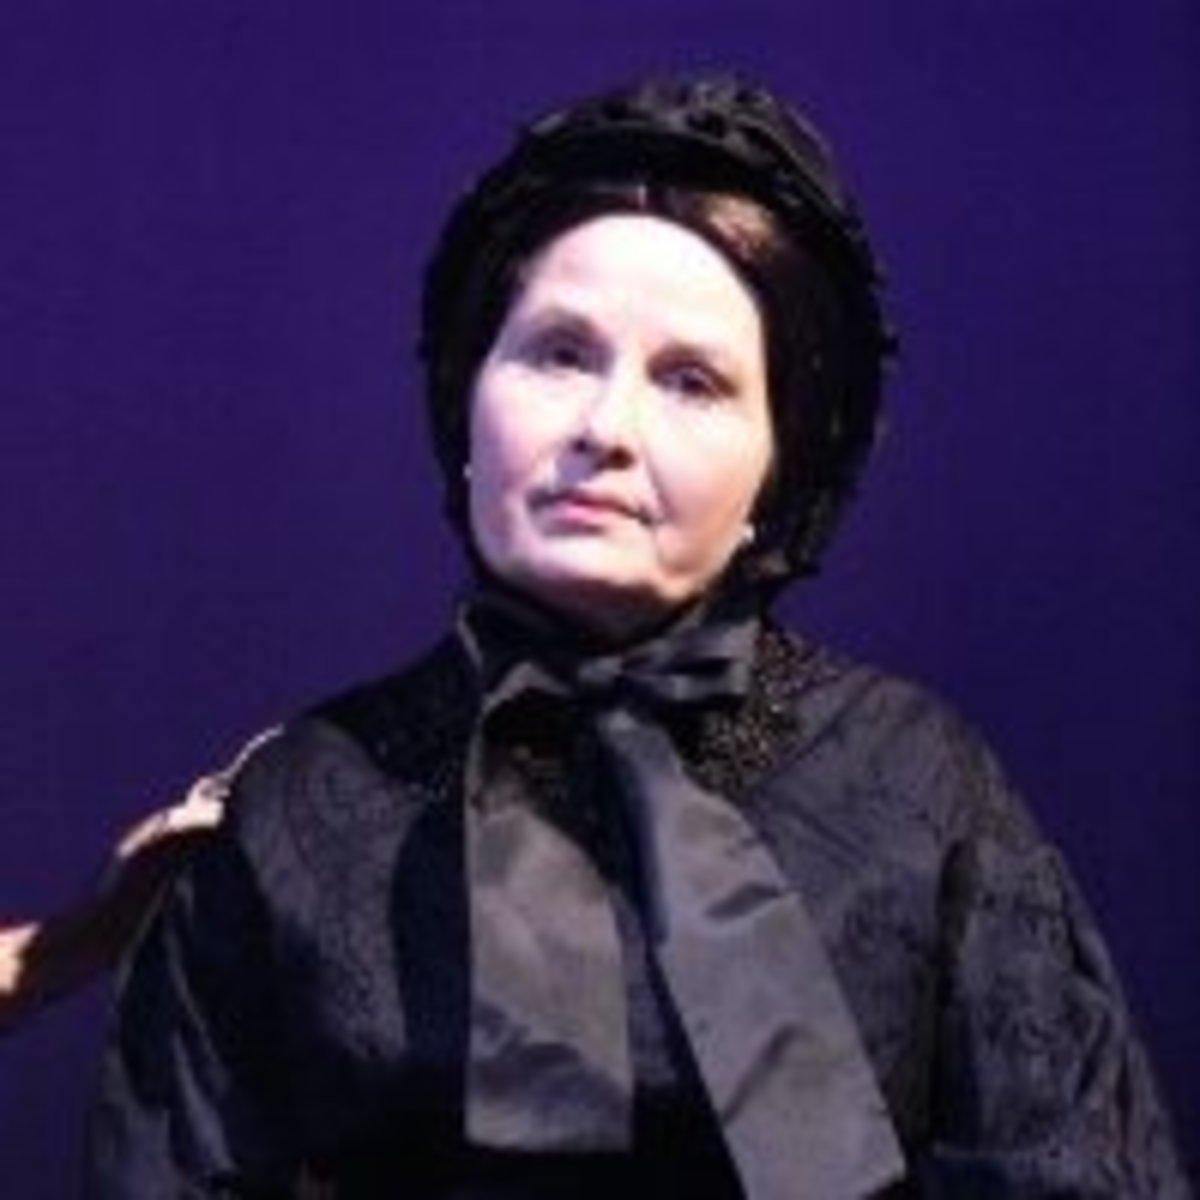 Pamela Brown actress who portrayed Mary Todd Lincoln in the mock trial